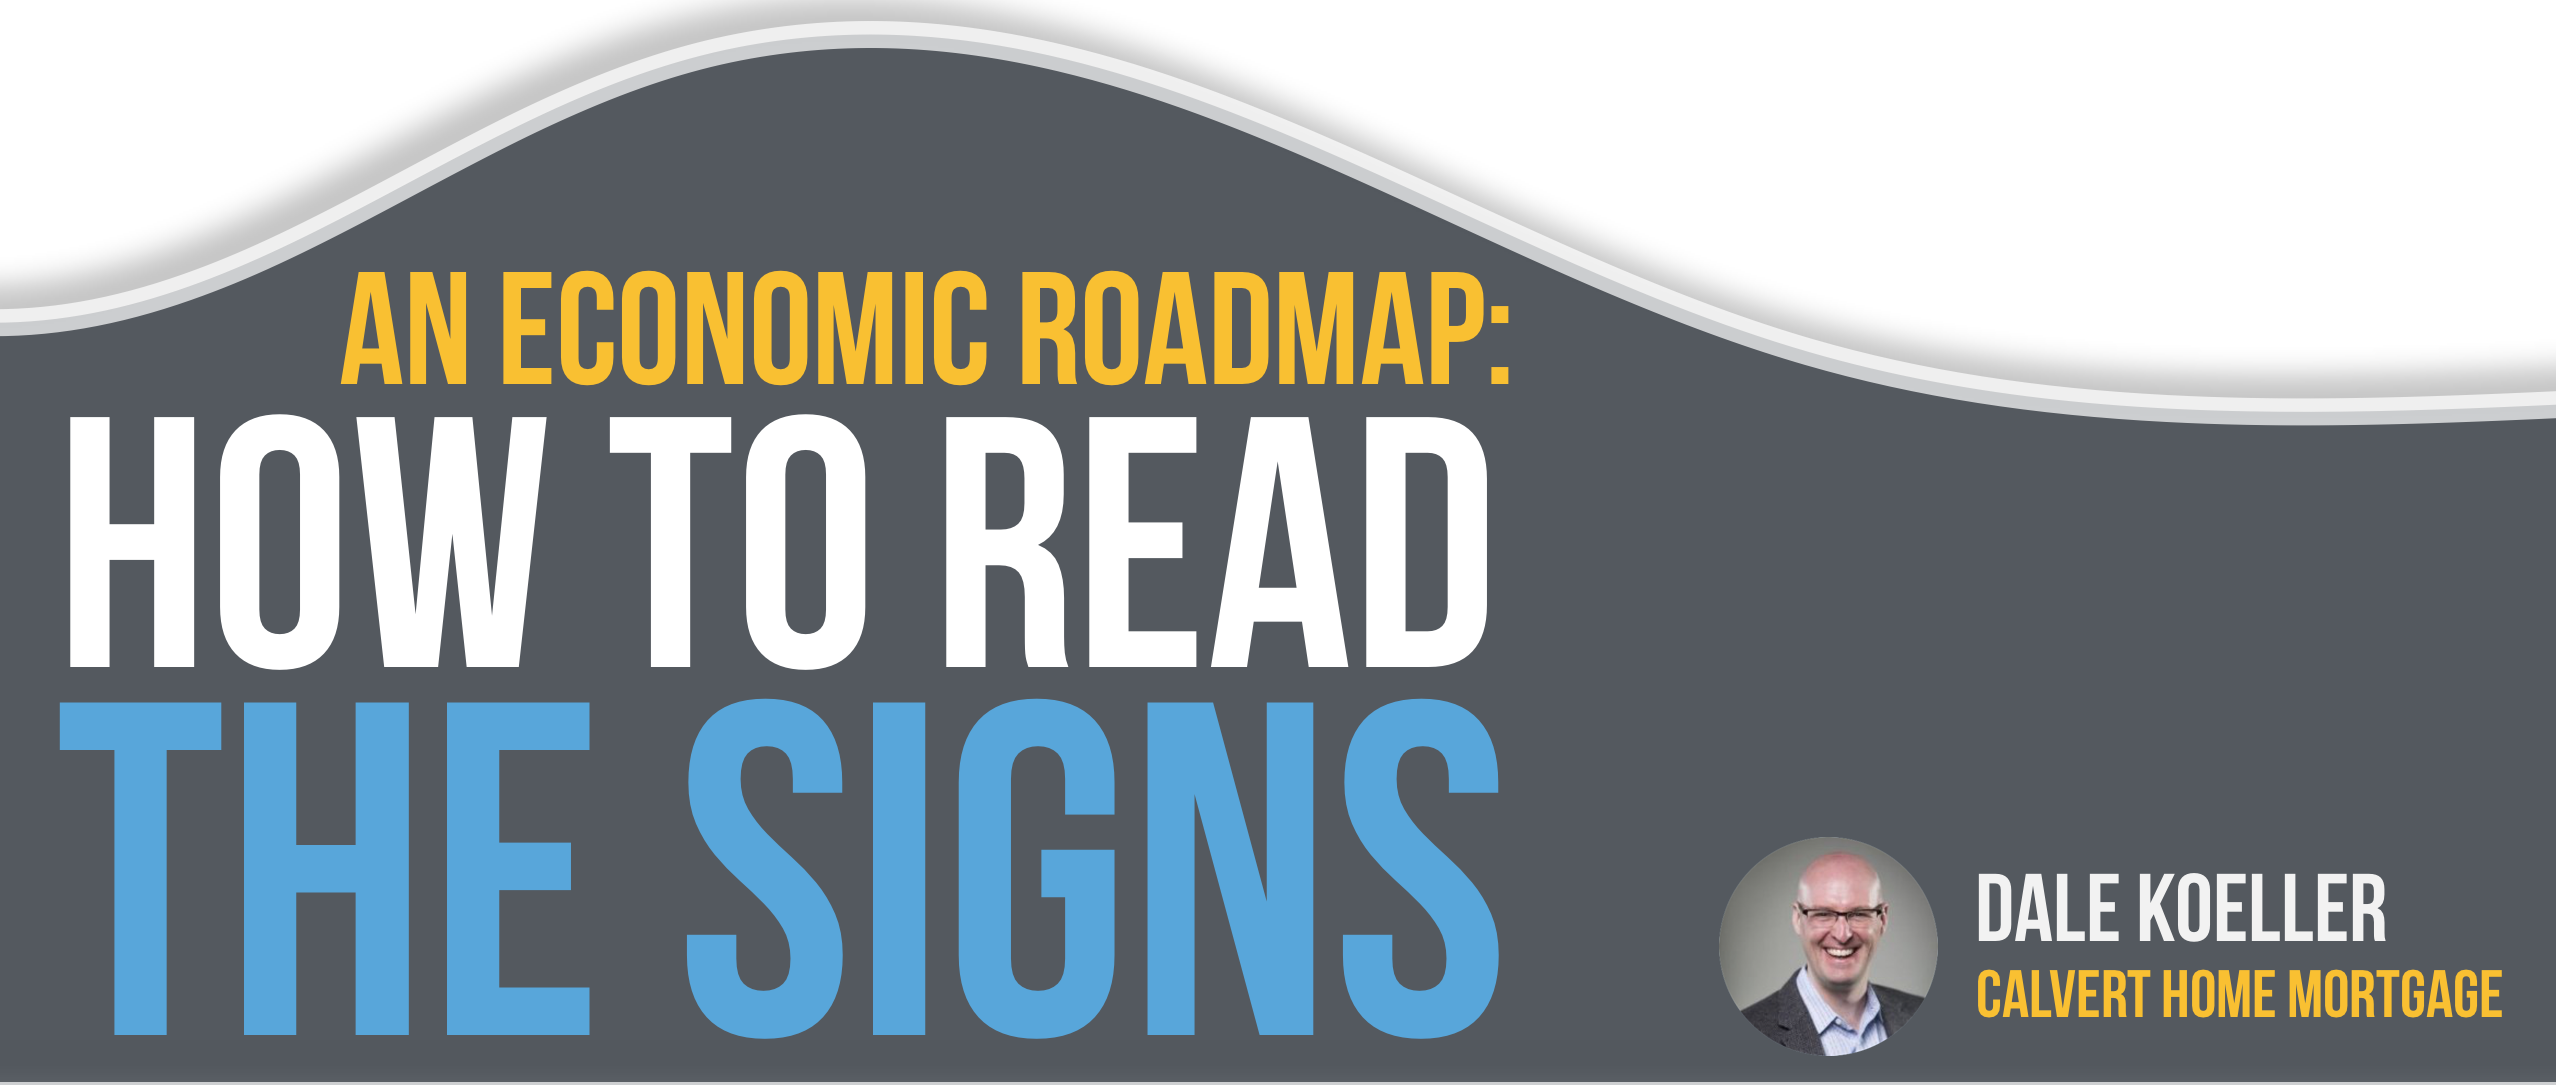 An Economic Roadmap: How to read the signs